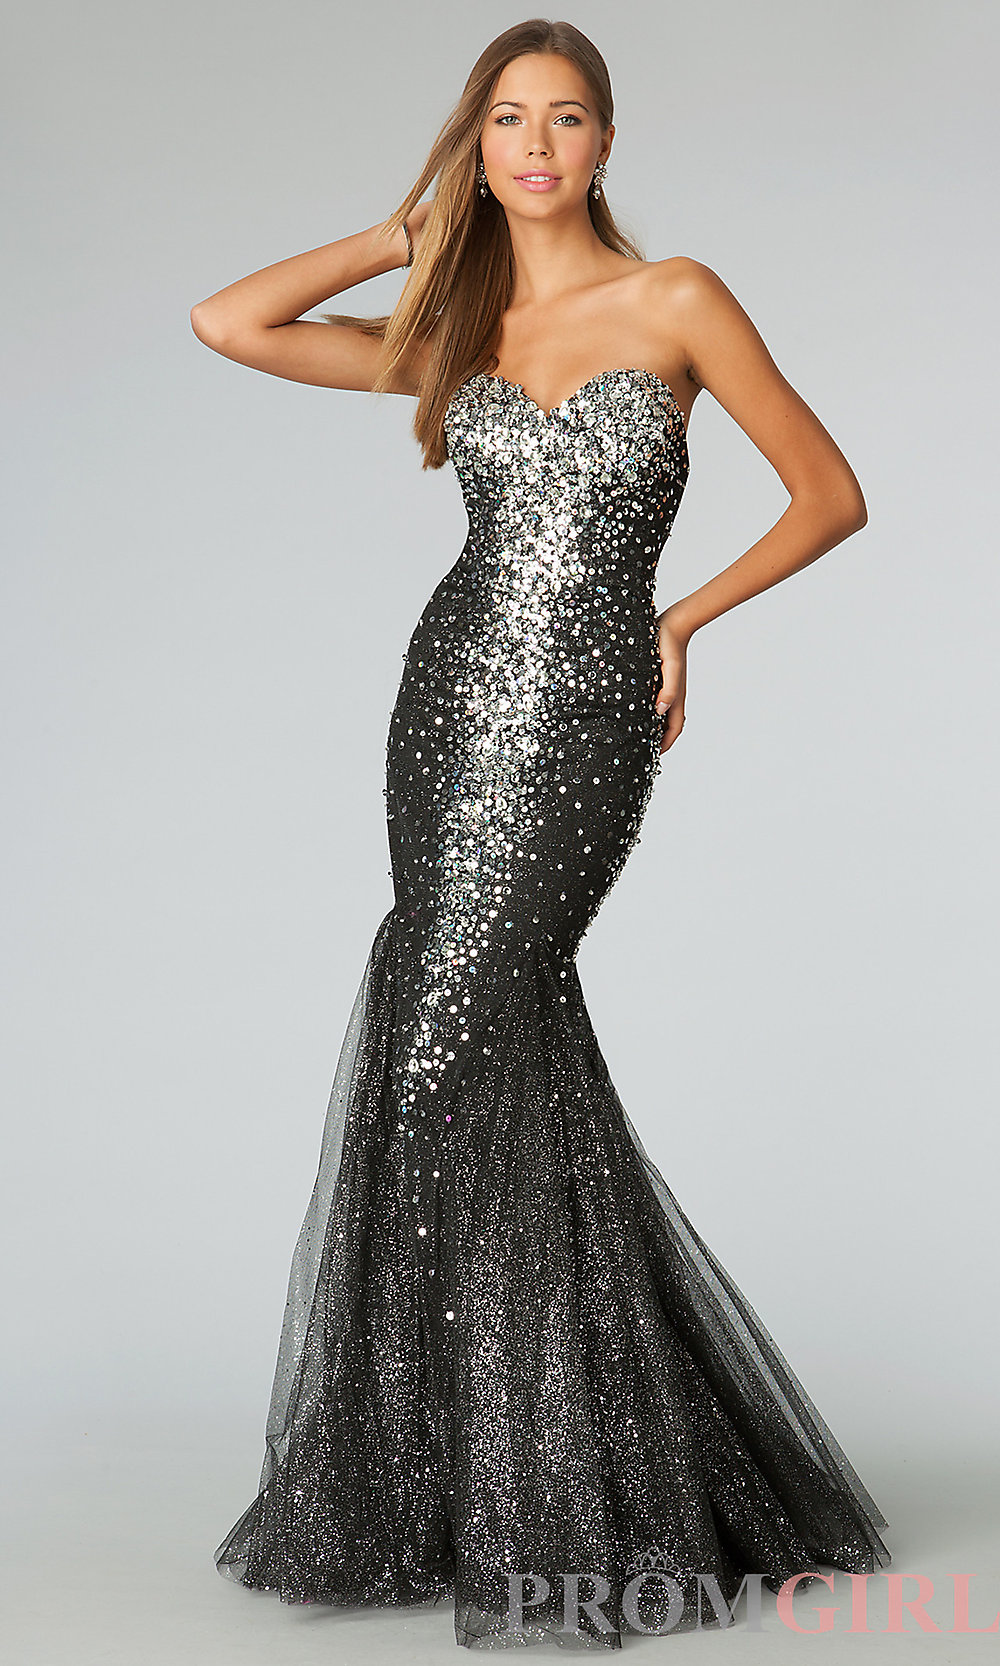 Latest Fancy Gowns, Prom and Cocktail dresses for Weddings and Parties 2014-2015 (2)